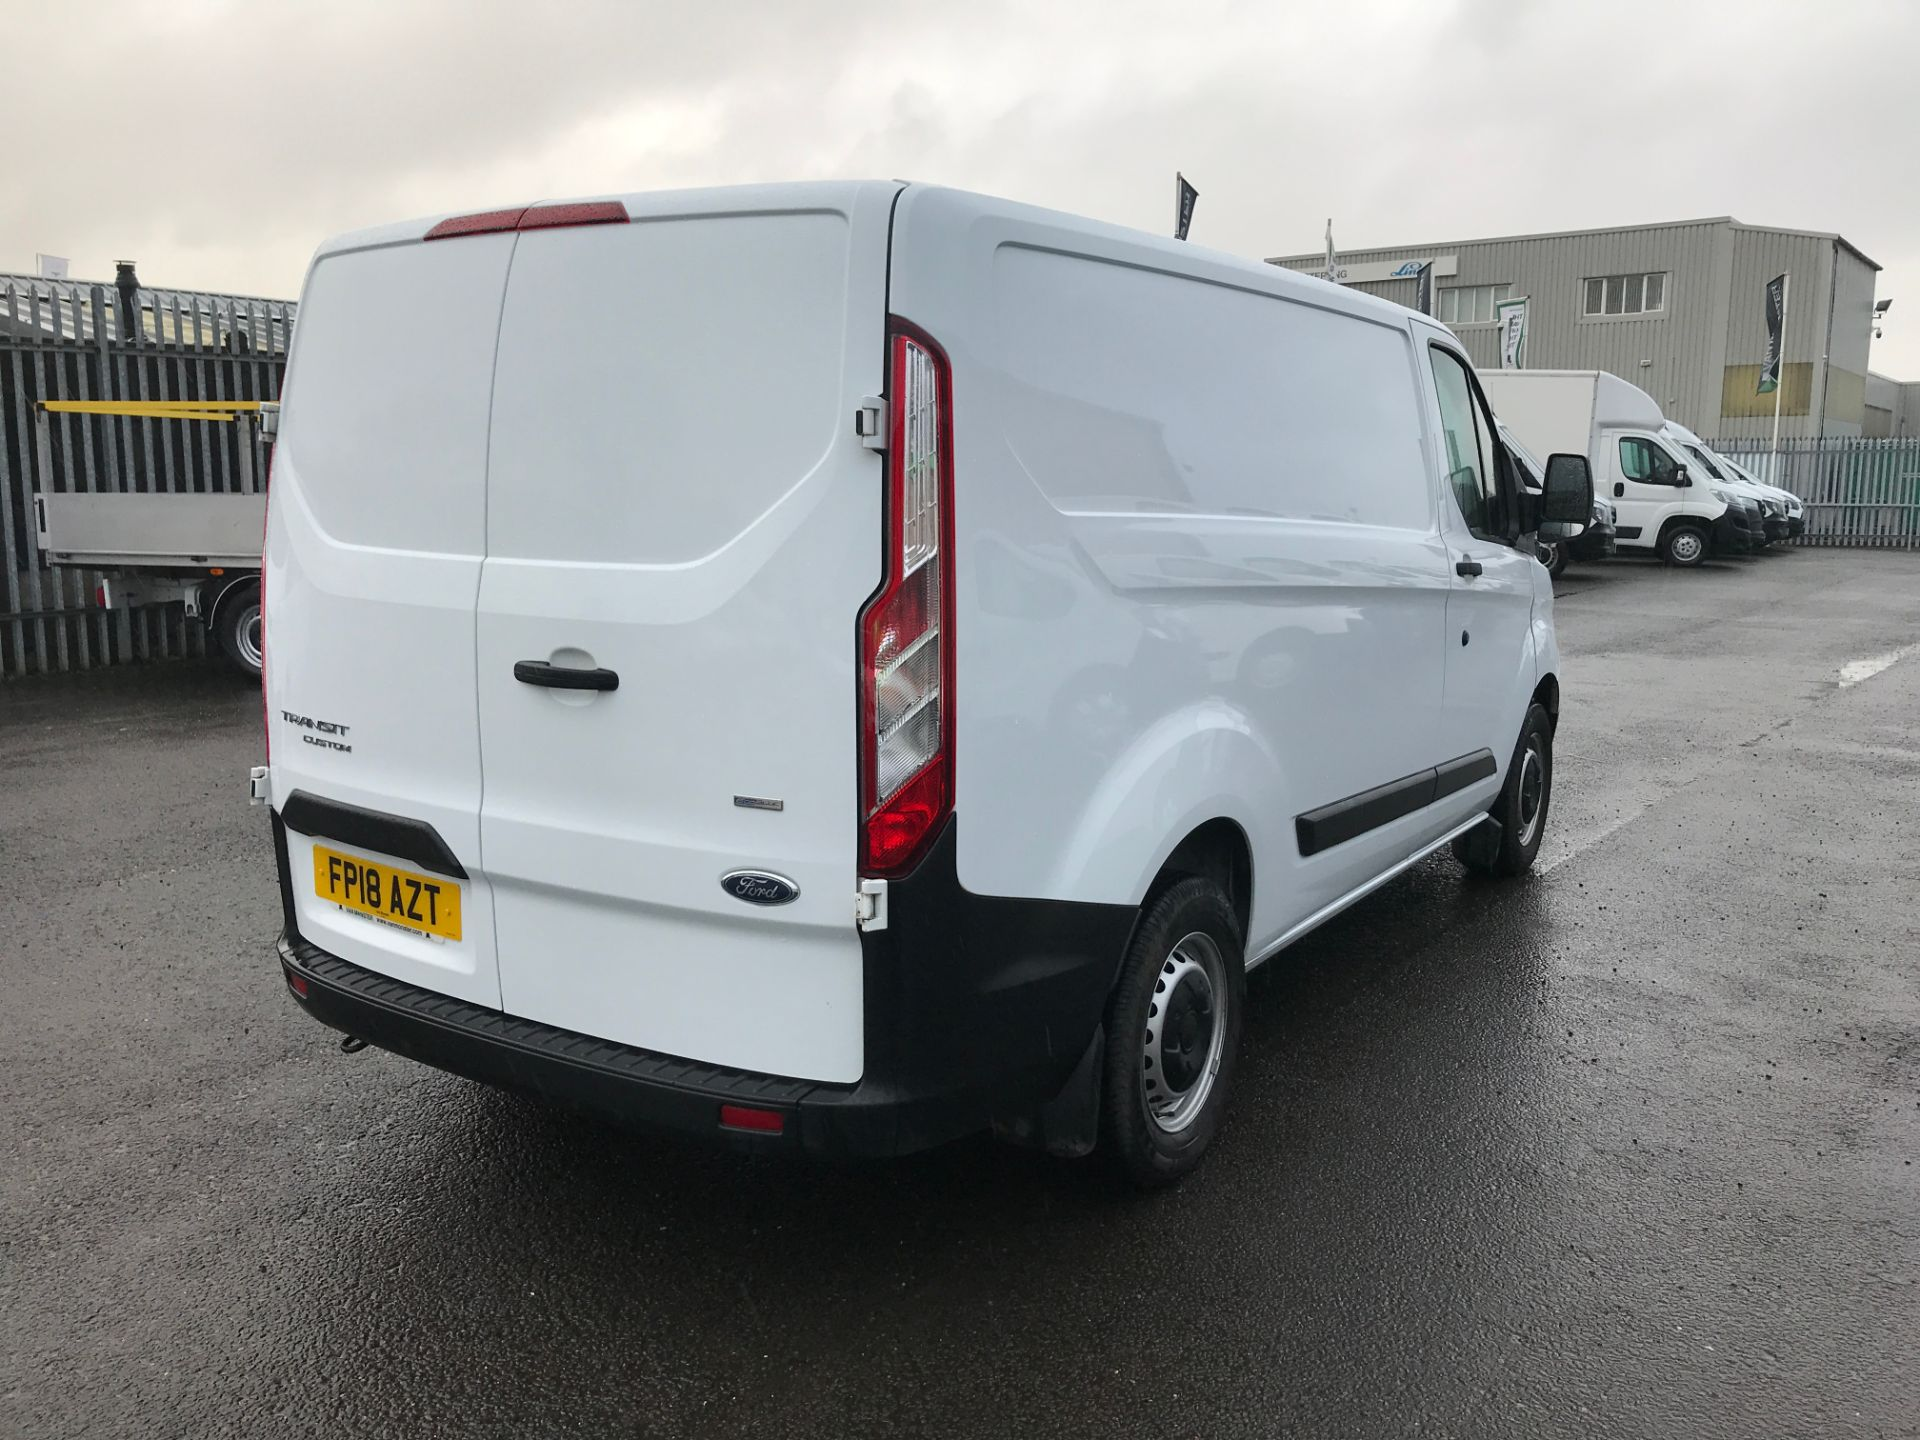 2018 Ford Transit Custom 300 L1 2.0TDCI 105PS LOW ROOF EURO 6 (FP18AZT) Image 5